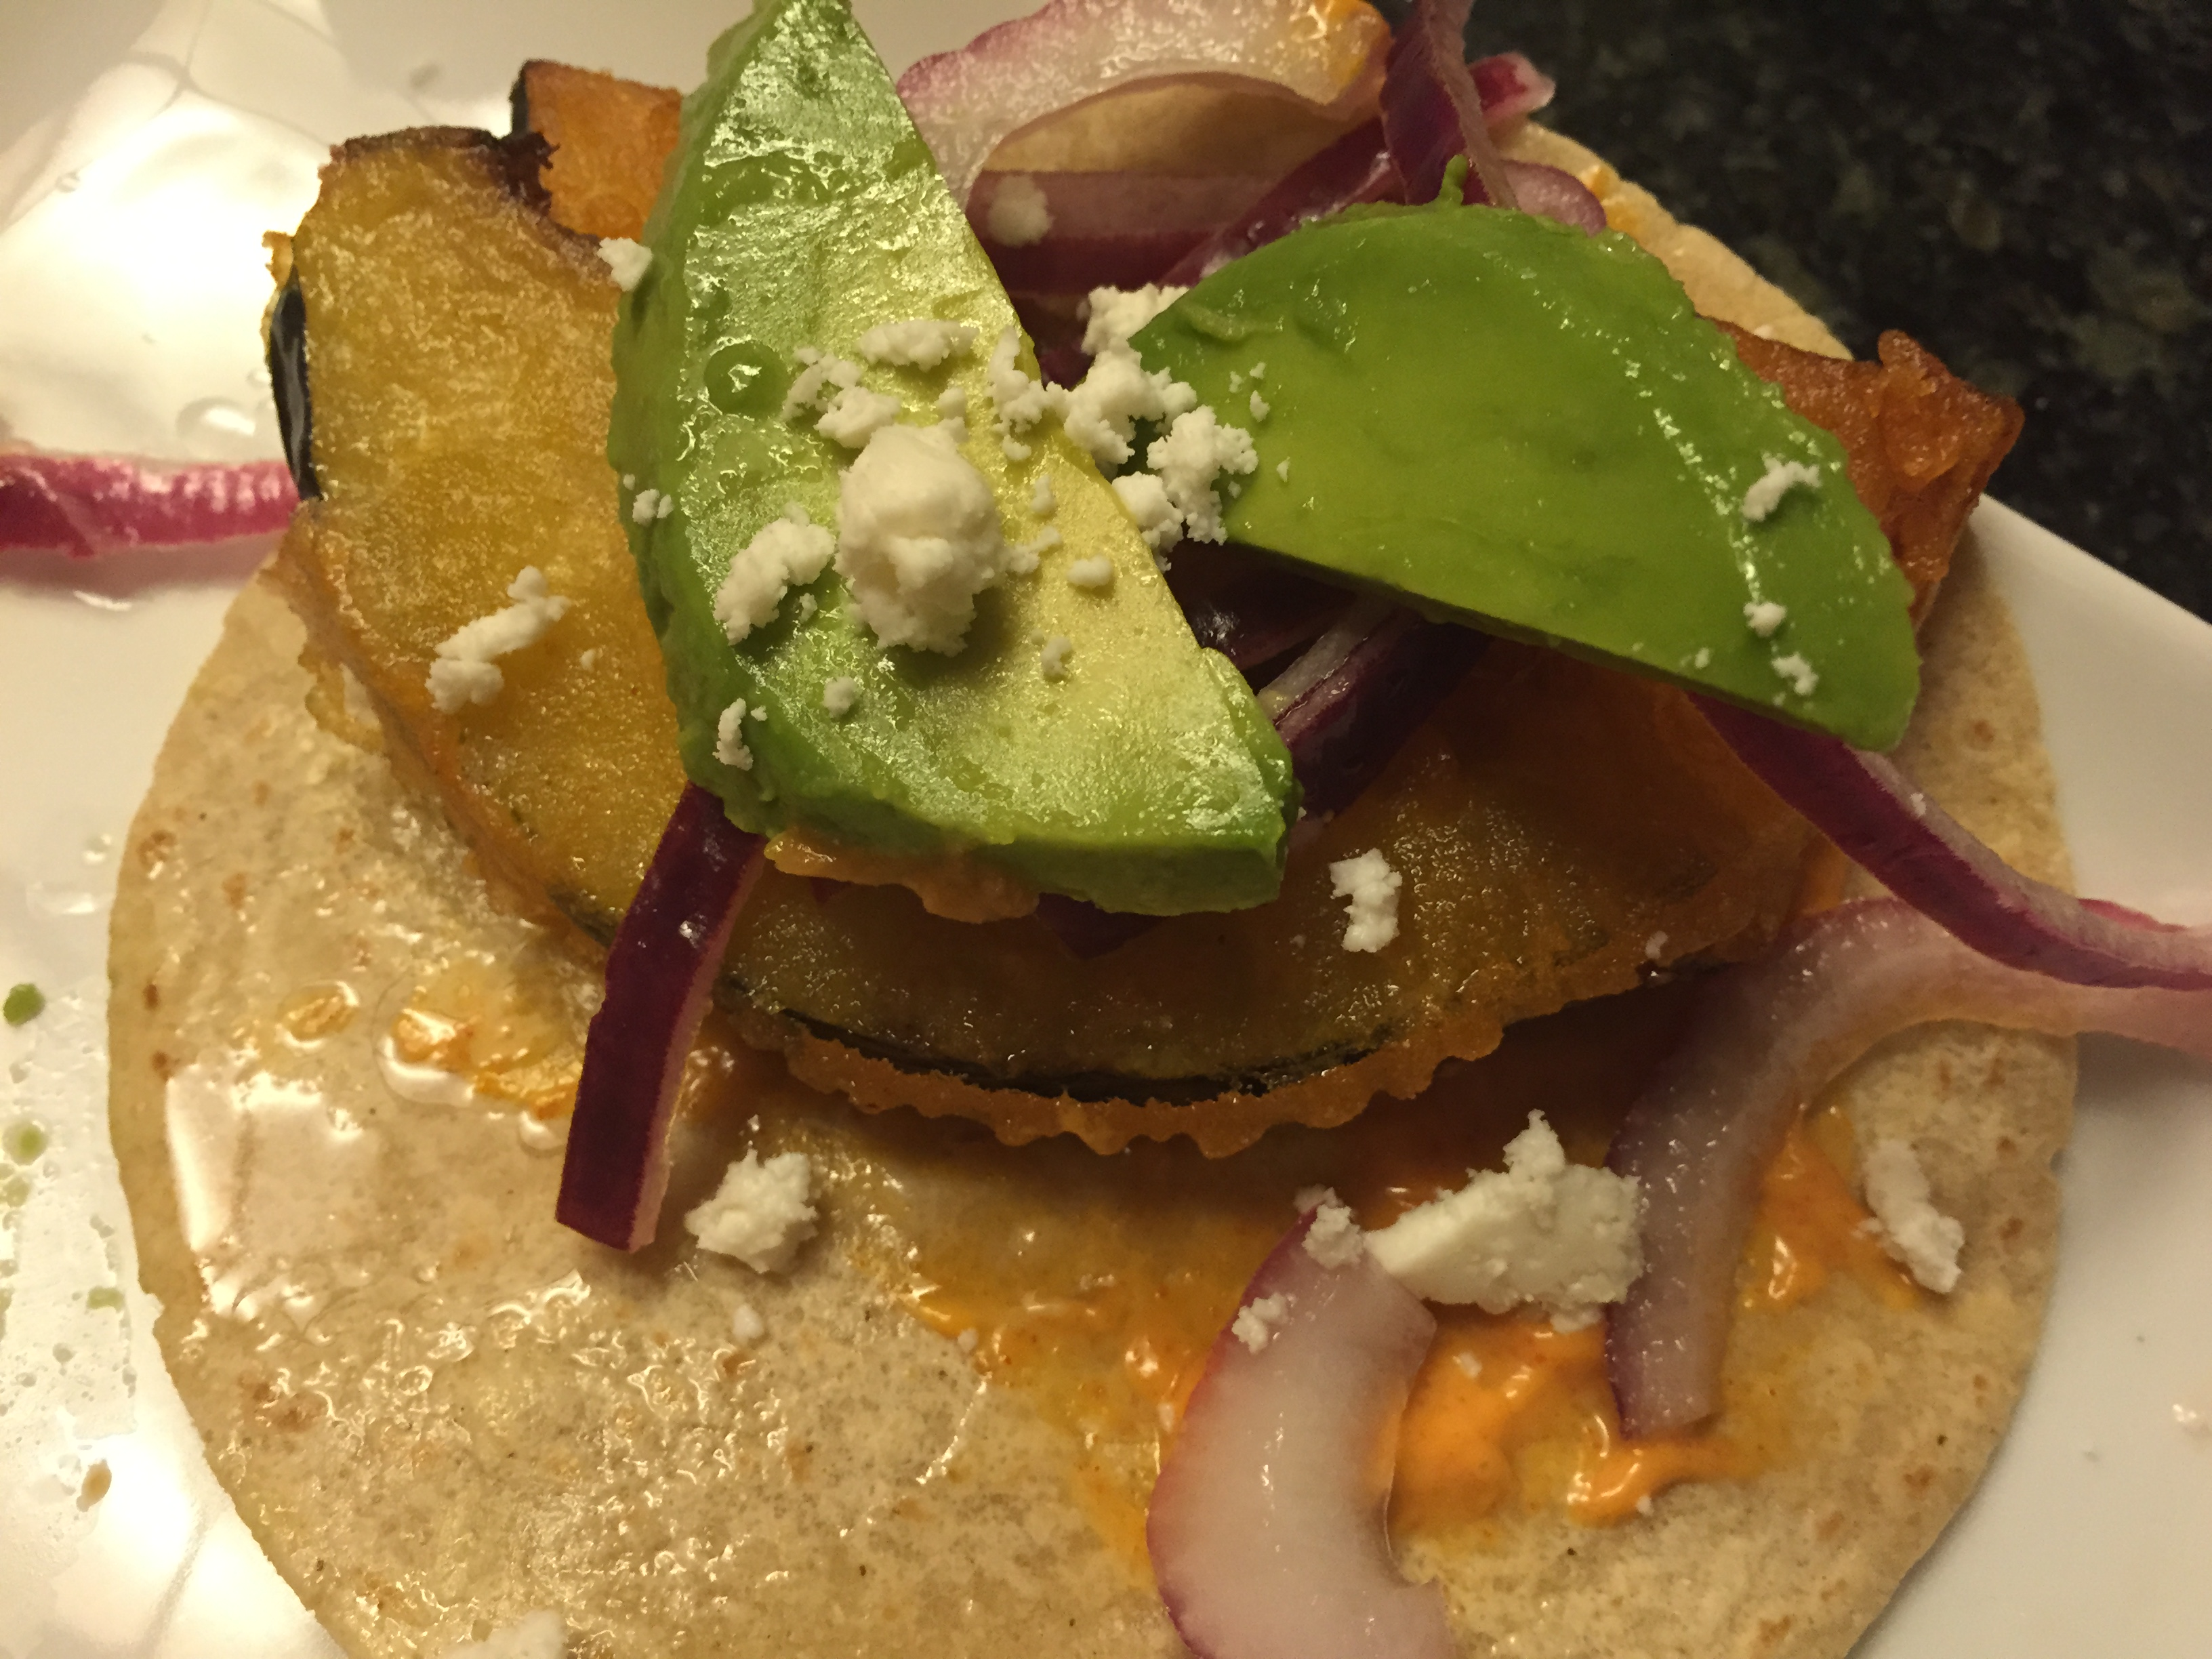 Blue apron tacos - By The Way If You Re Making These Tacos At Home I Opted To Pickle Half Of The Onions And It Made A Huge Difference Just Cover Your Onion Slices In A Mix